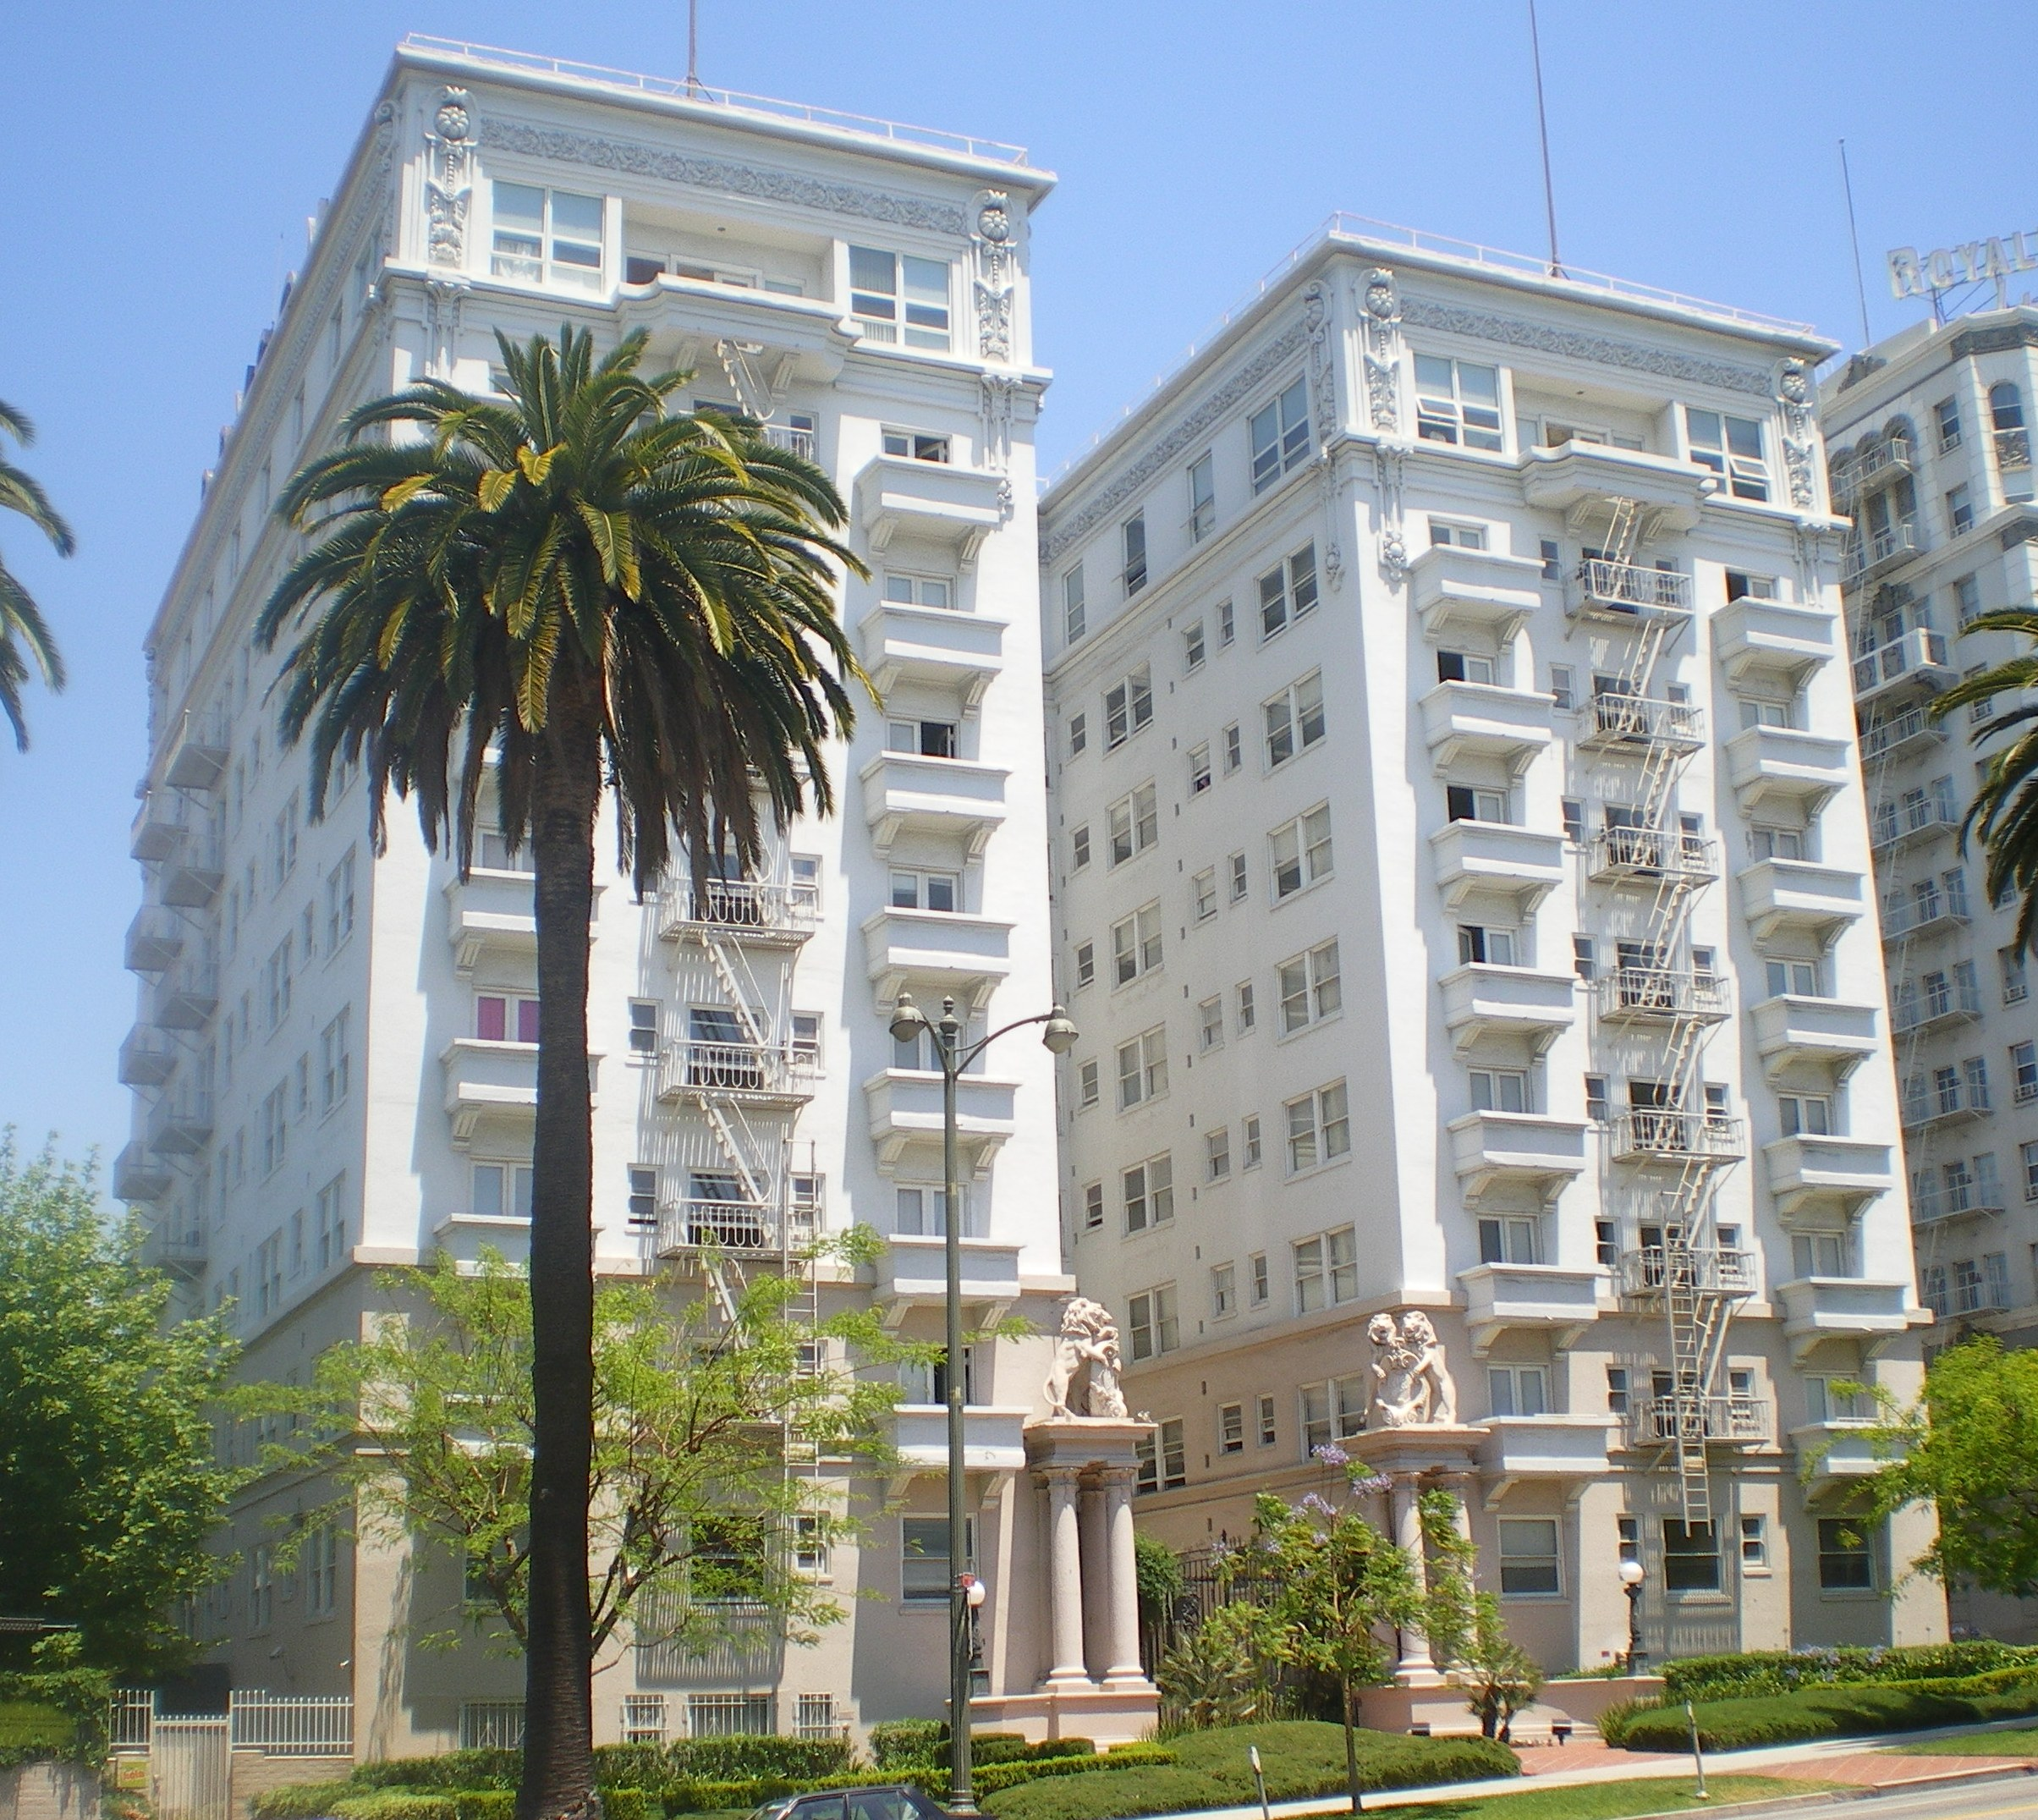 File:Bryson Apartment Hotel, Los Angeles.JPG - Wikipedia